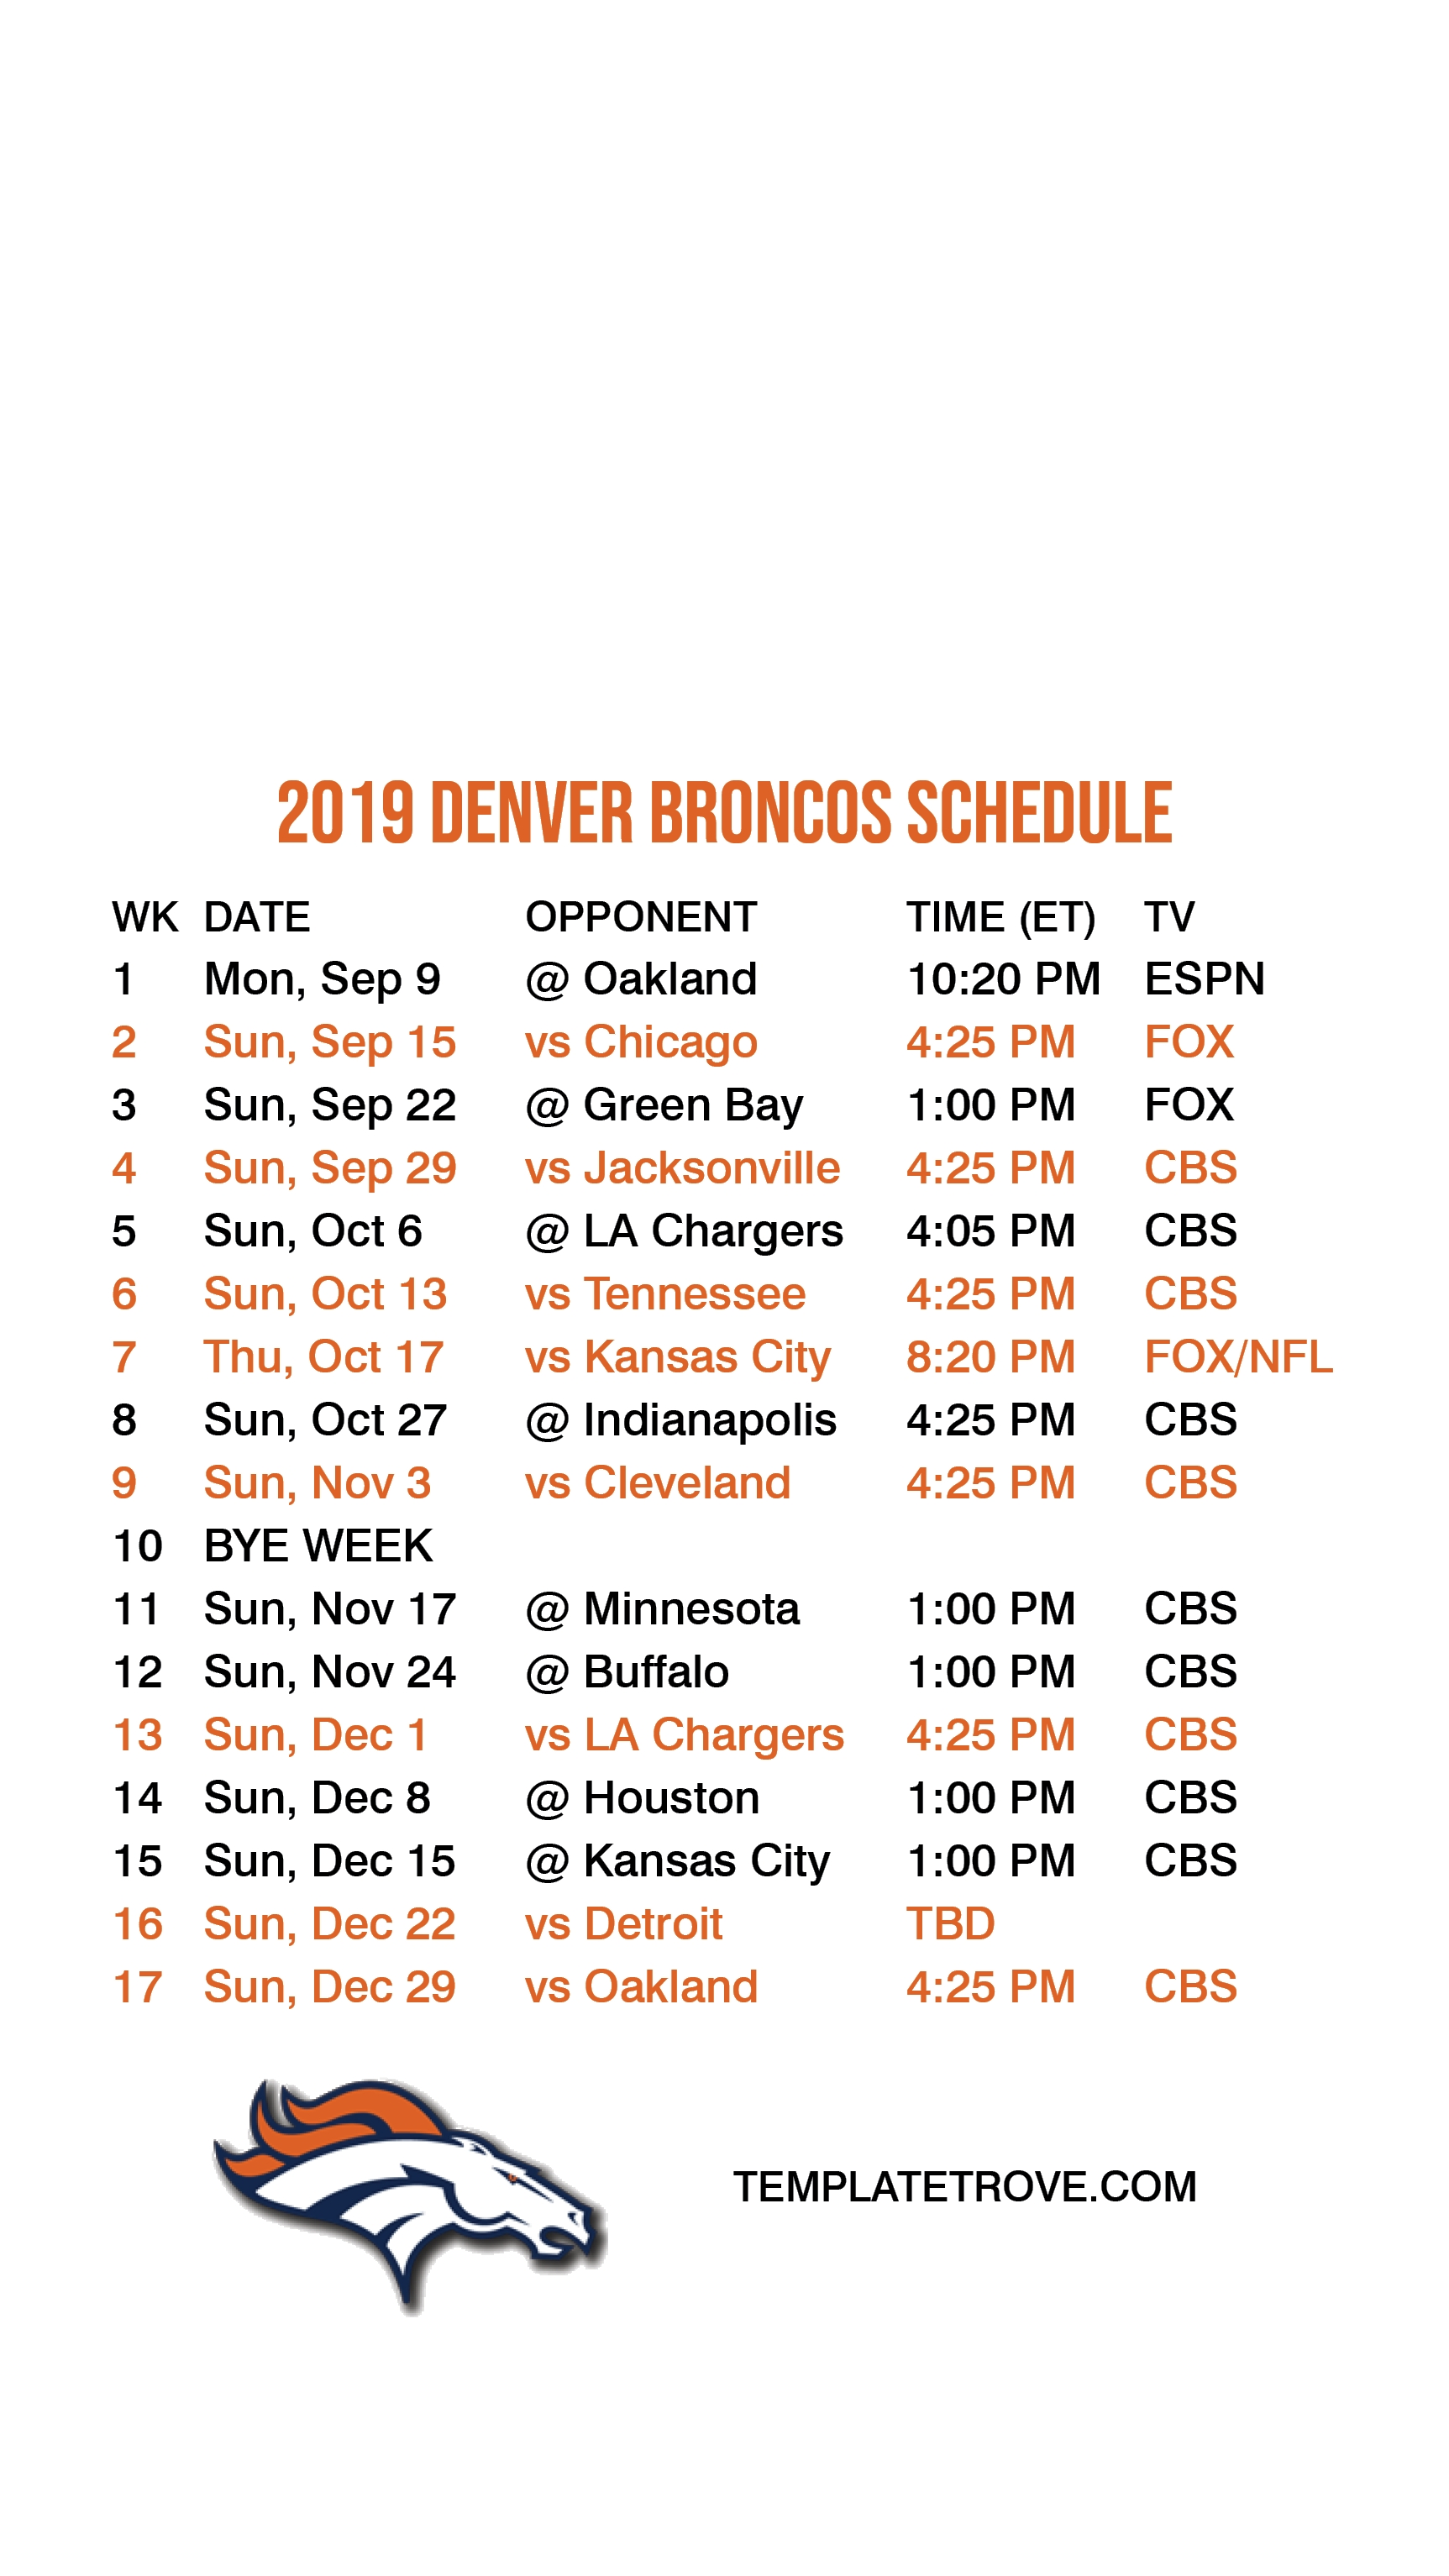 2019-2020 Denver Broncos Lock Screen Schedule For Iphone 6-7 within Printable Nfl Schudule For 2019-2020